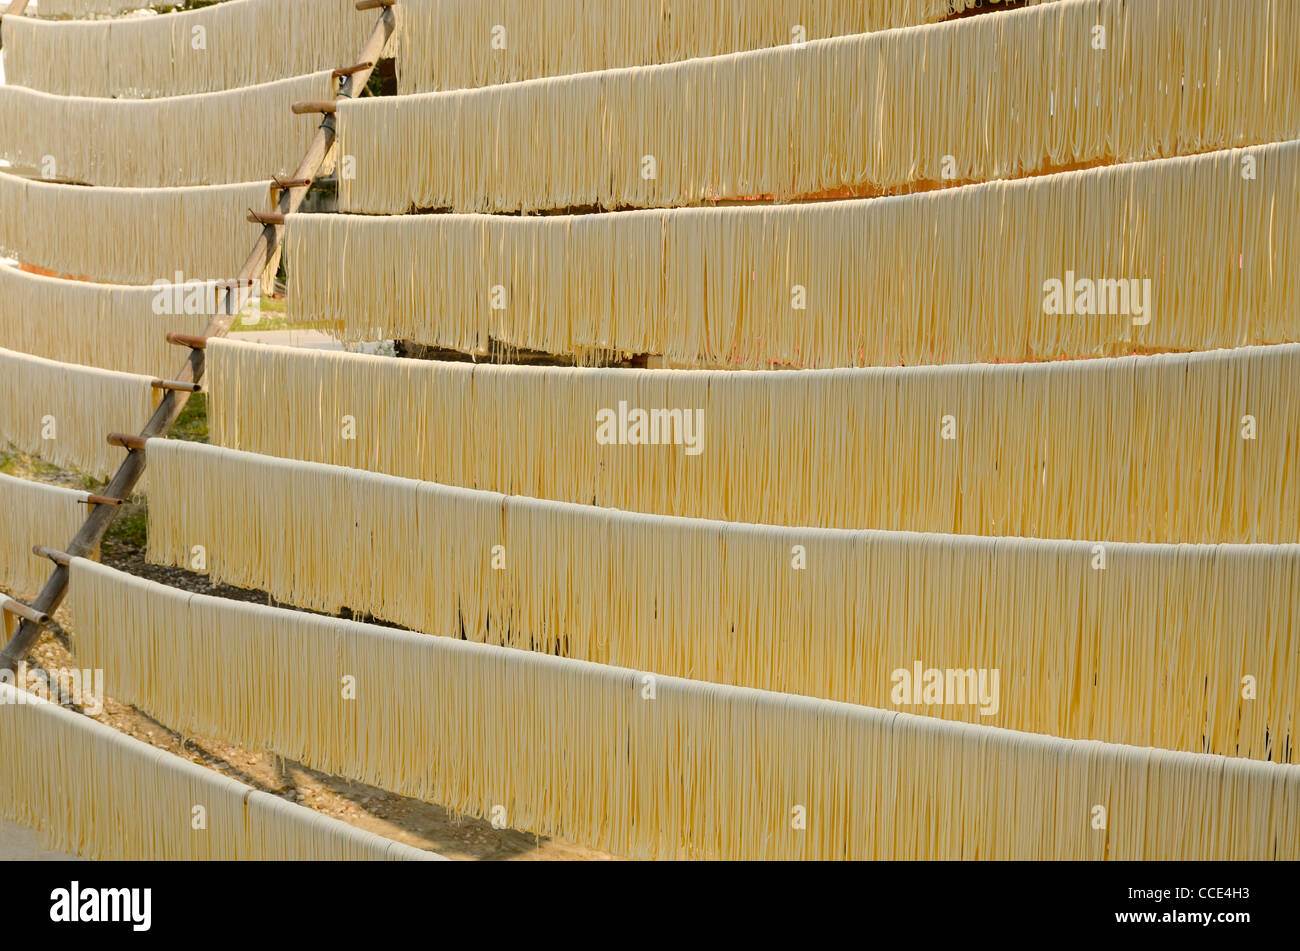 Noodles hanging out to dry on rods in Fuli near Yangshuo China - Stock Image